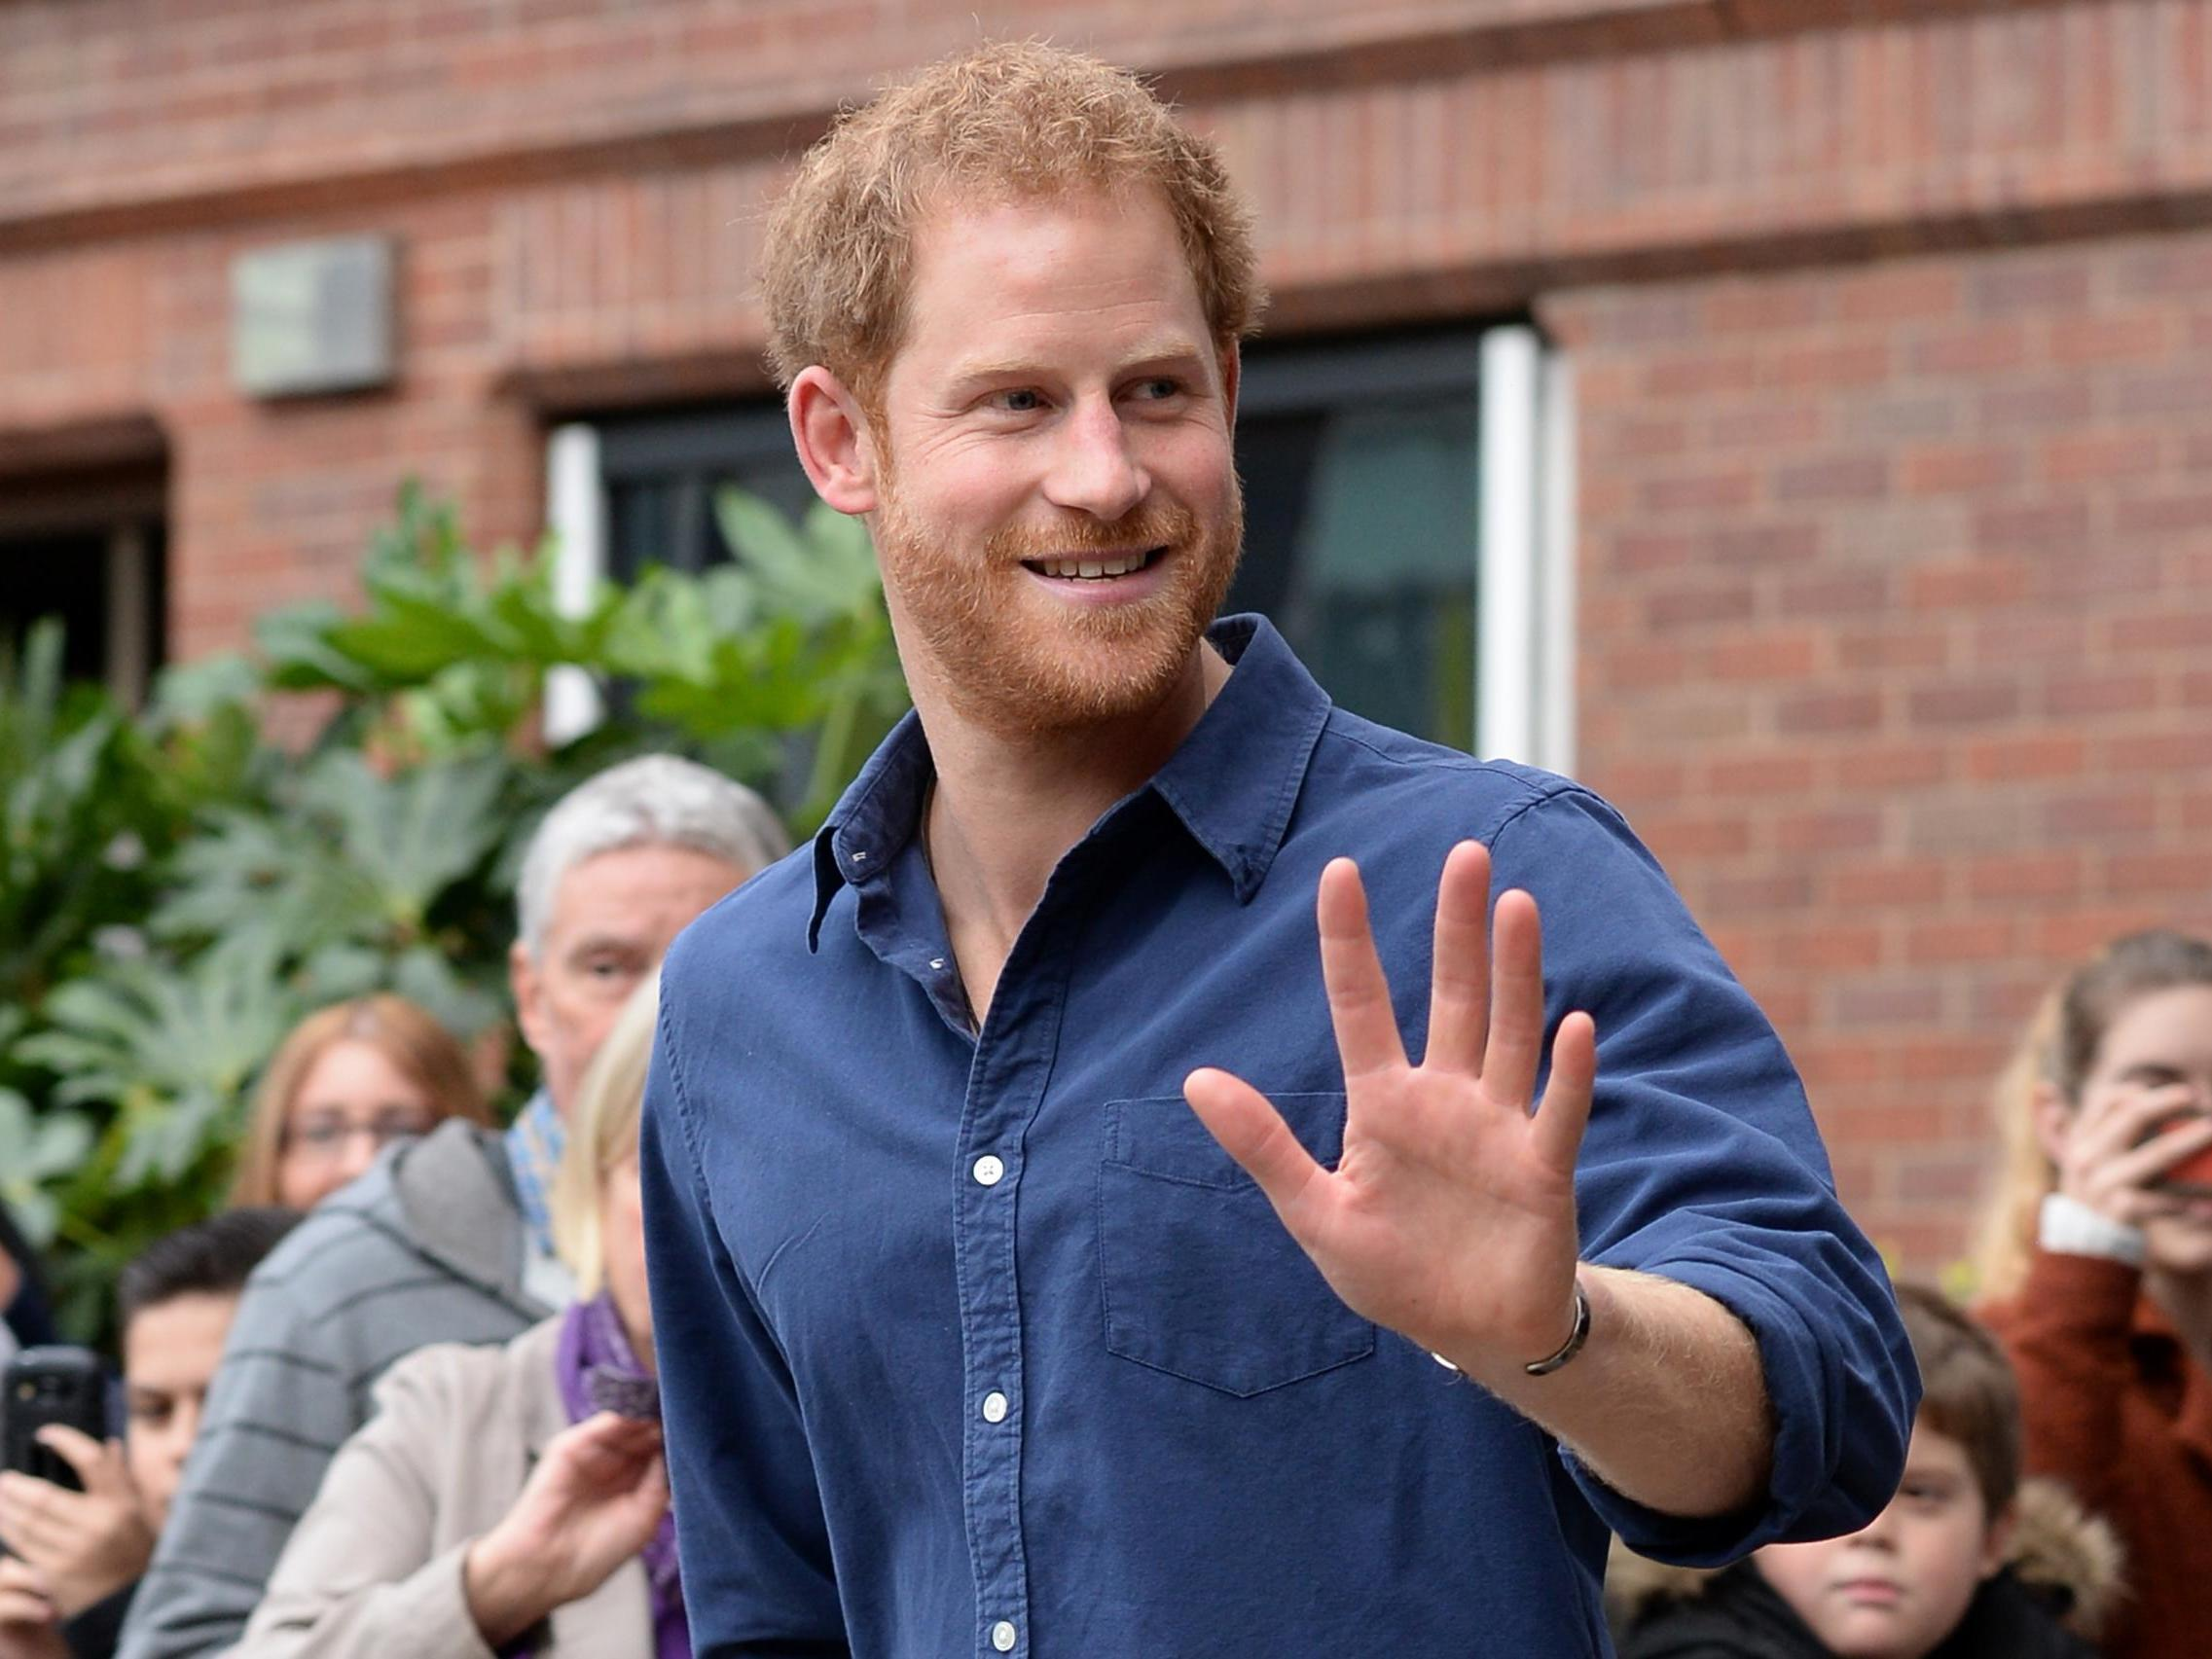 Prince Harry launches campaign encouraging people to 'share the beauty of trees'